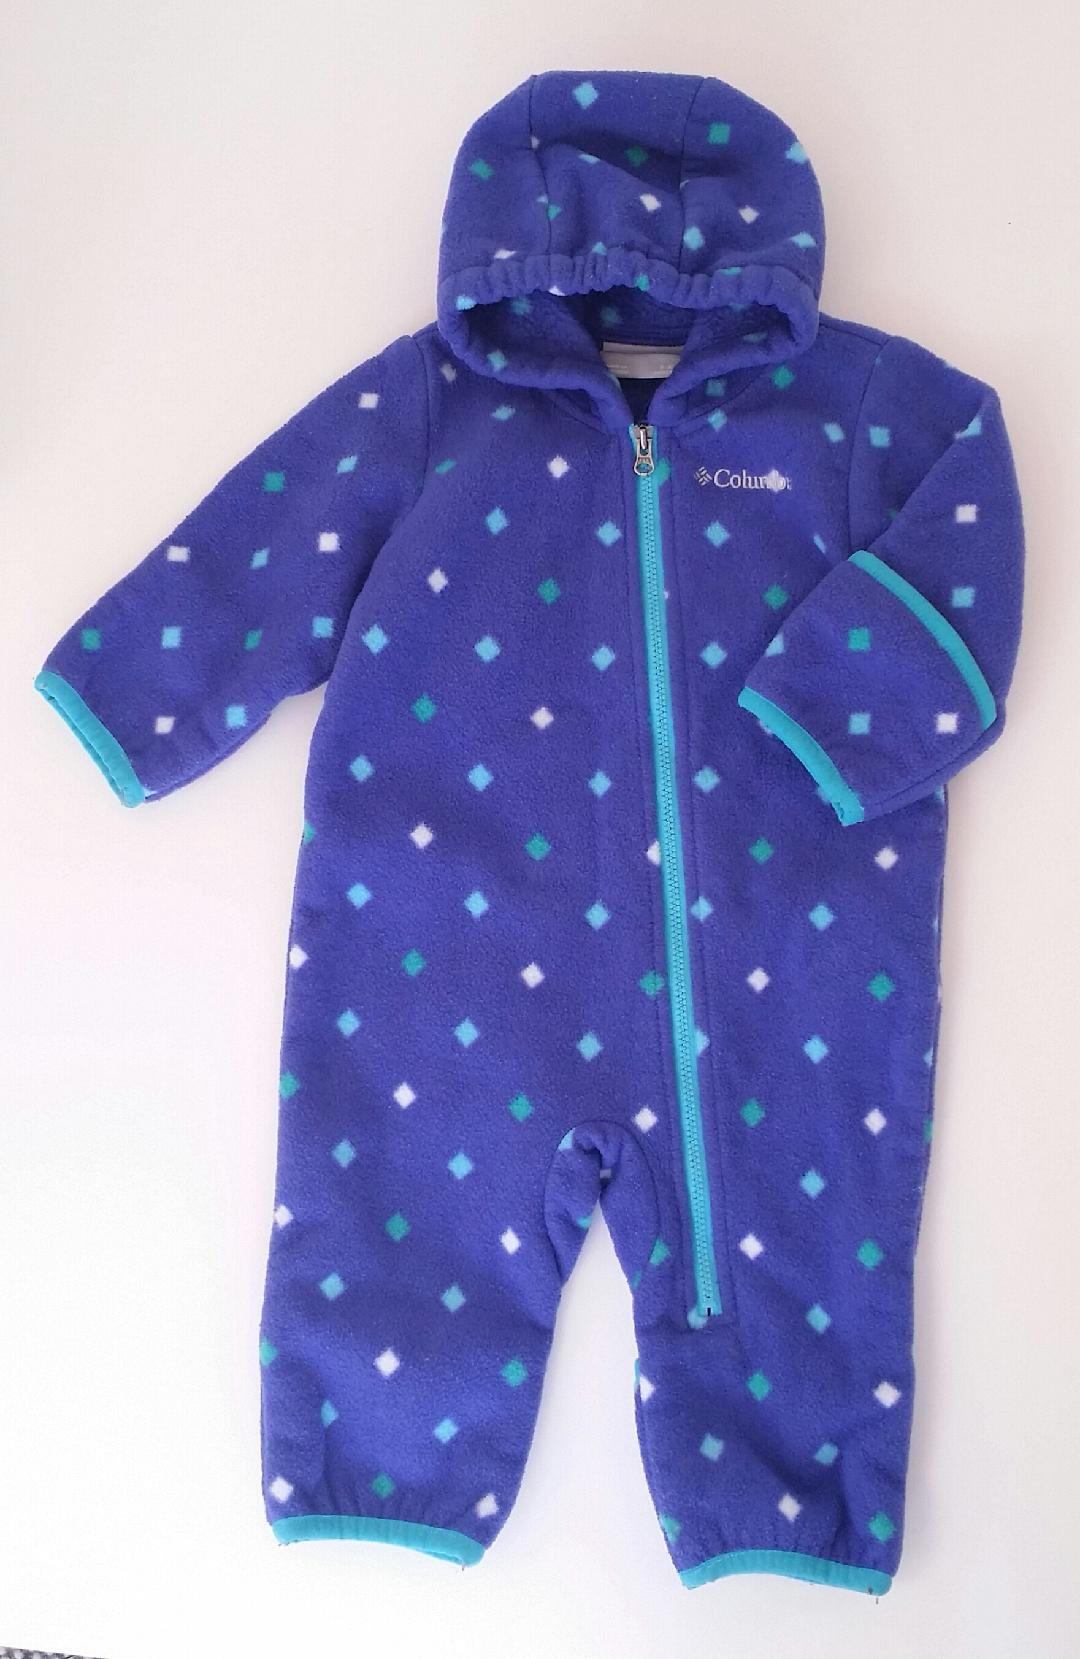 Columbia-3-6-MONTHS-Fleece-Outerwear_2125498A.jpg